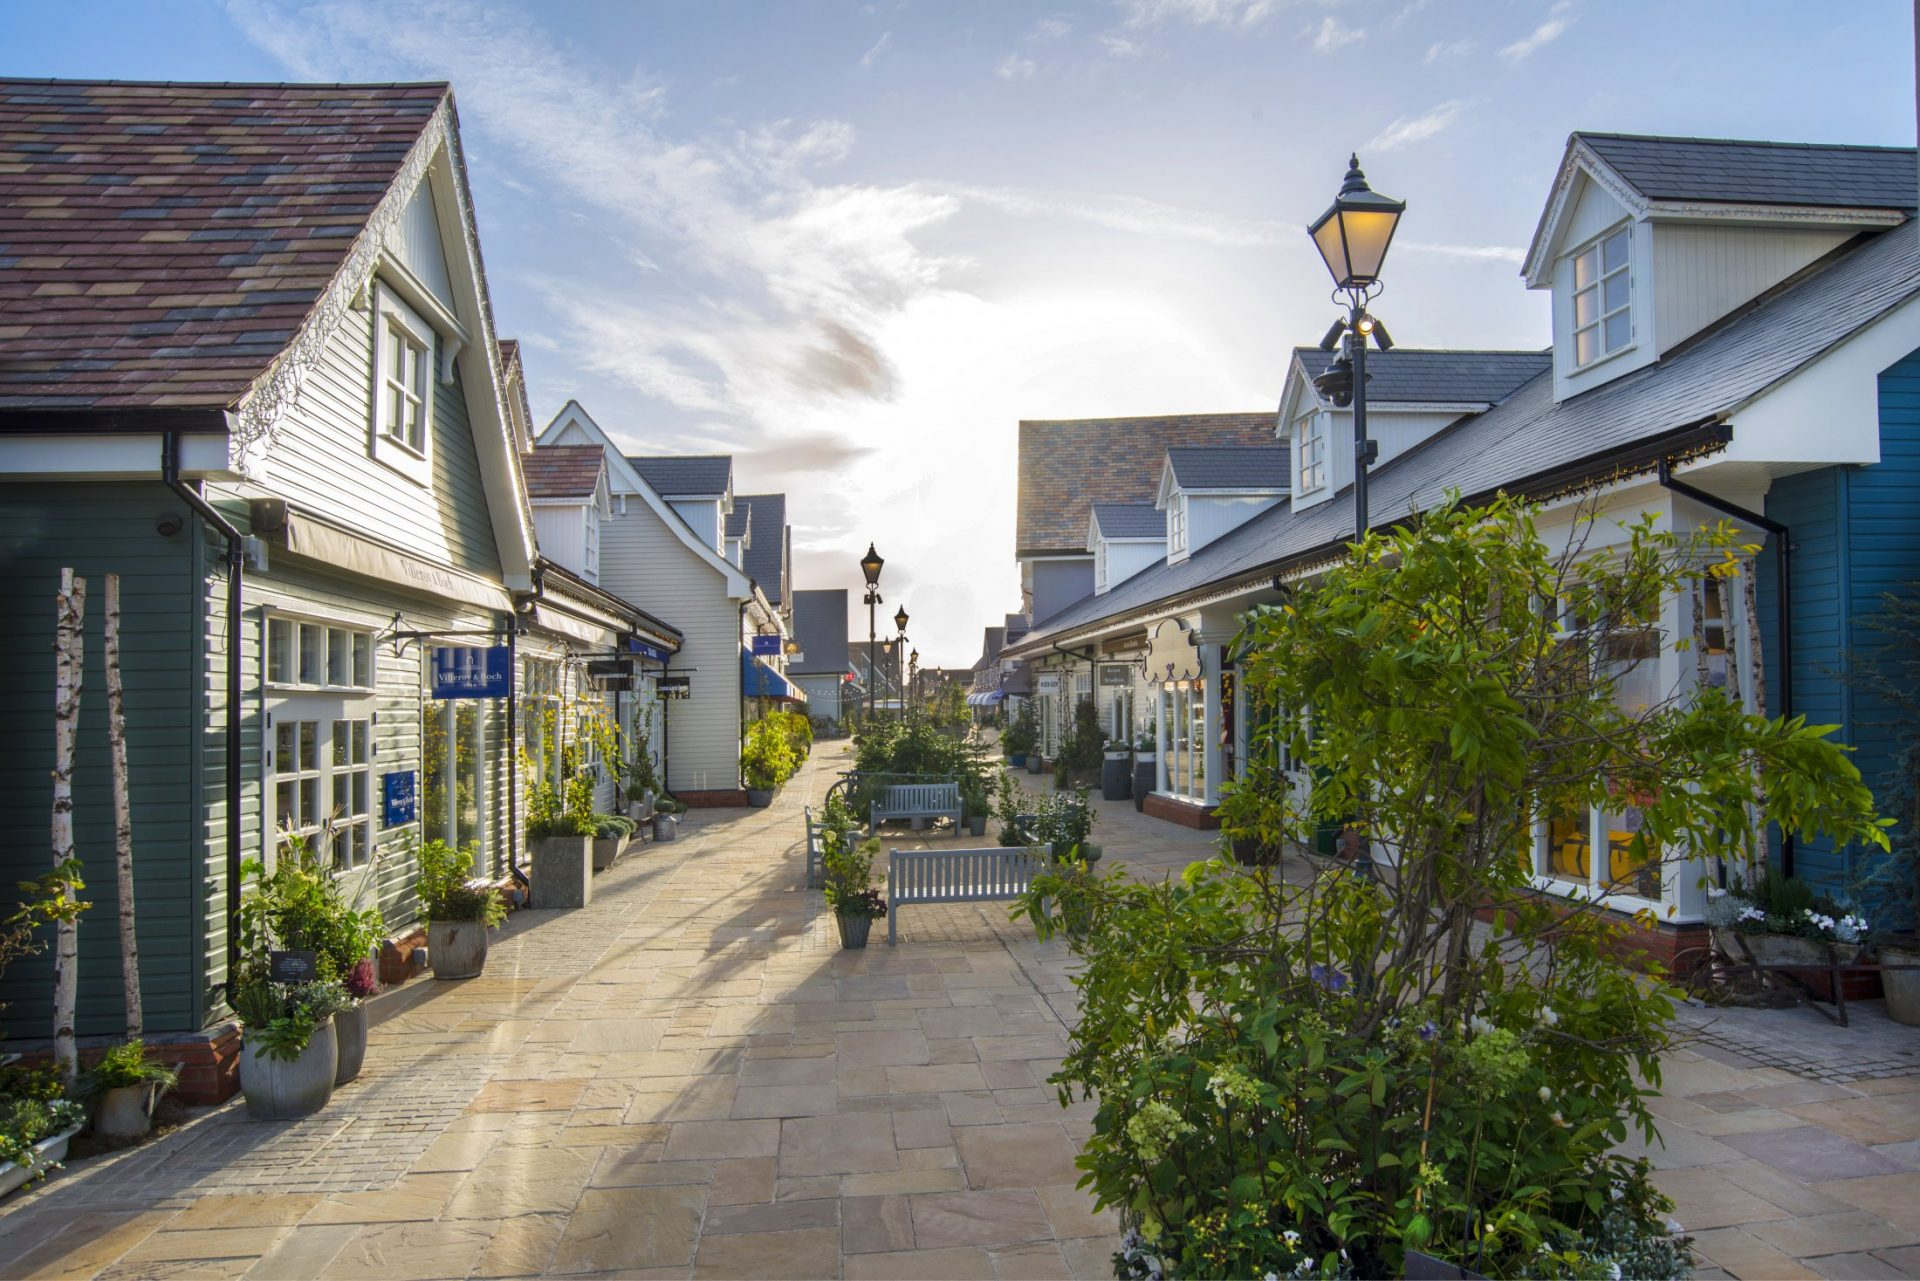 BuytoLet Property Investment Hotspots – Bicester